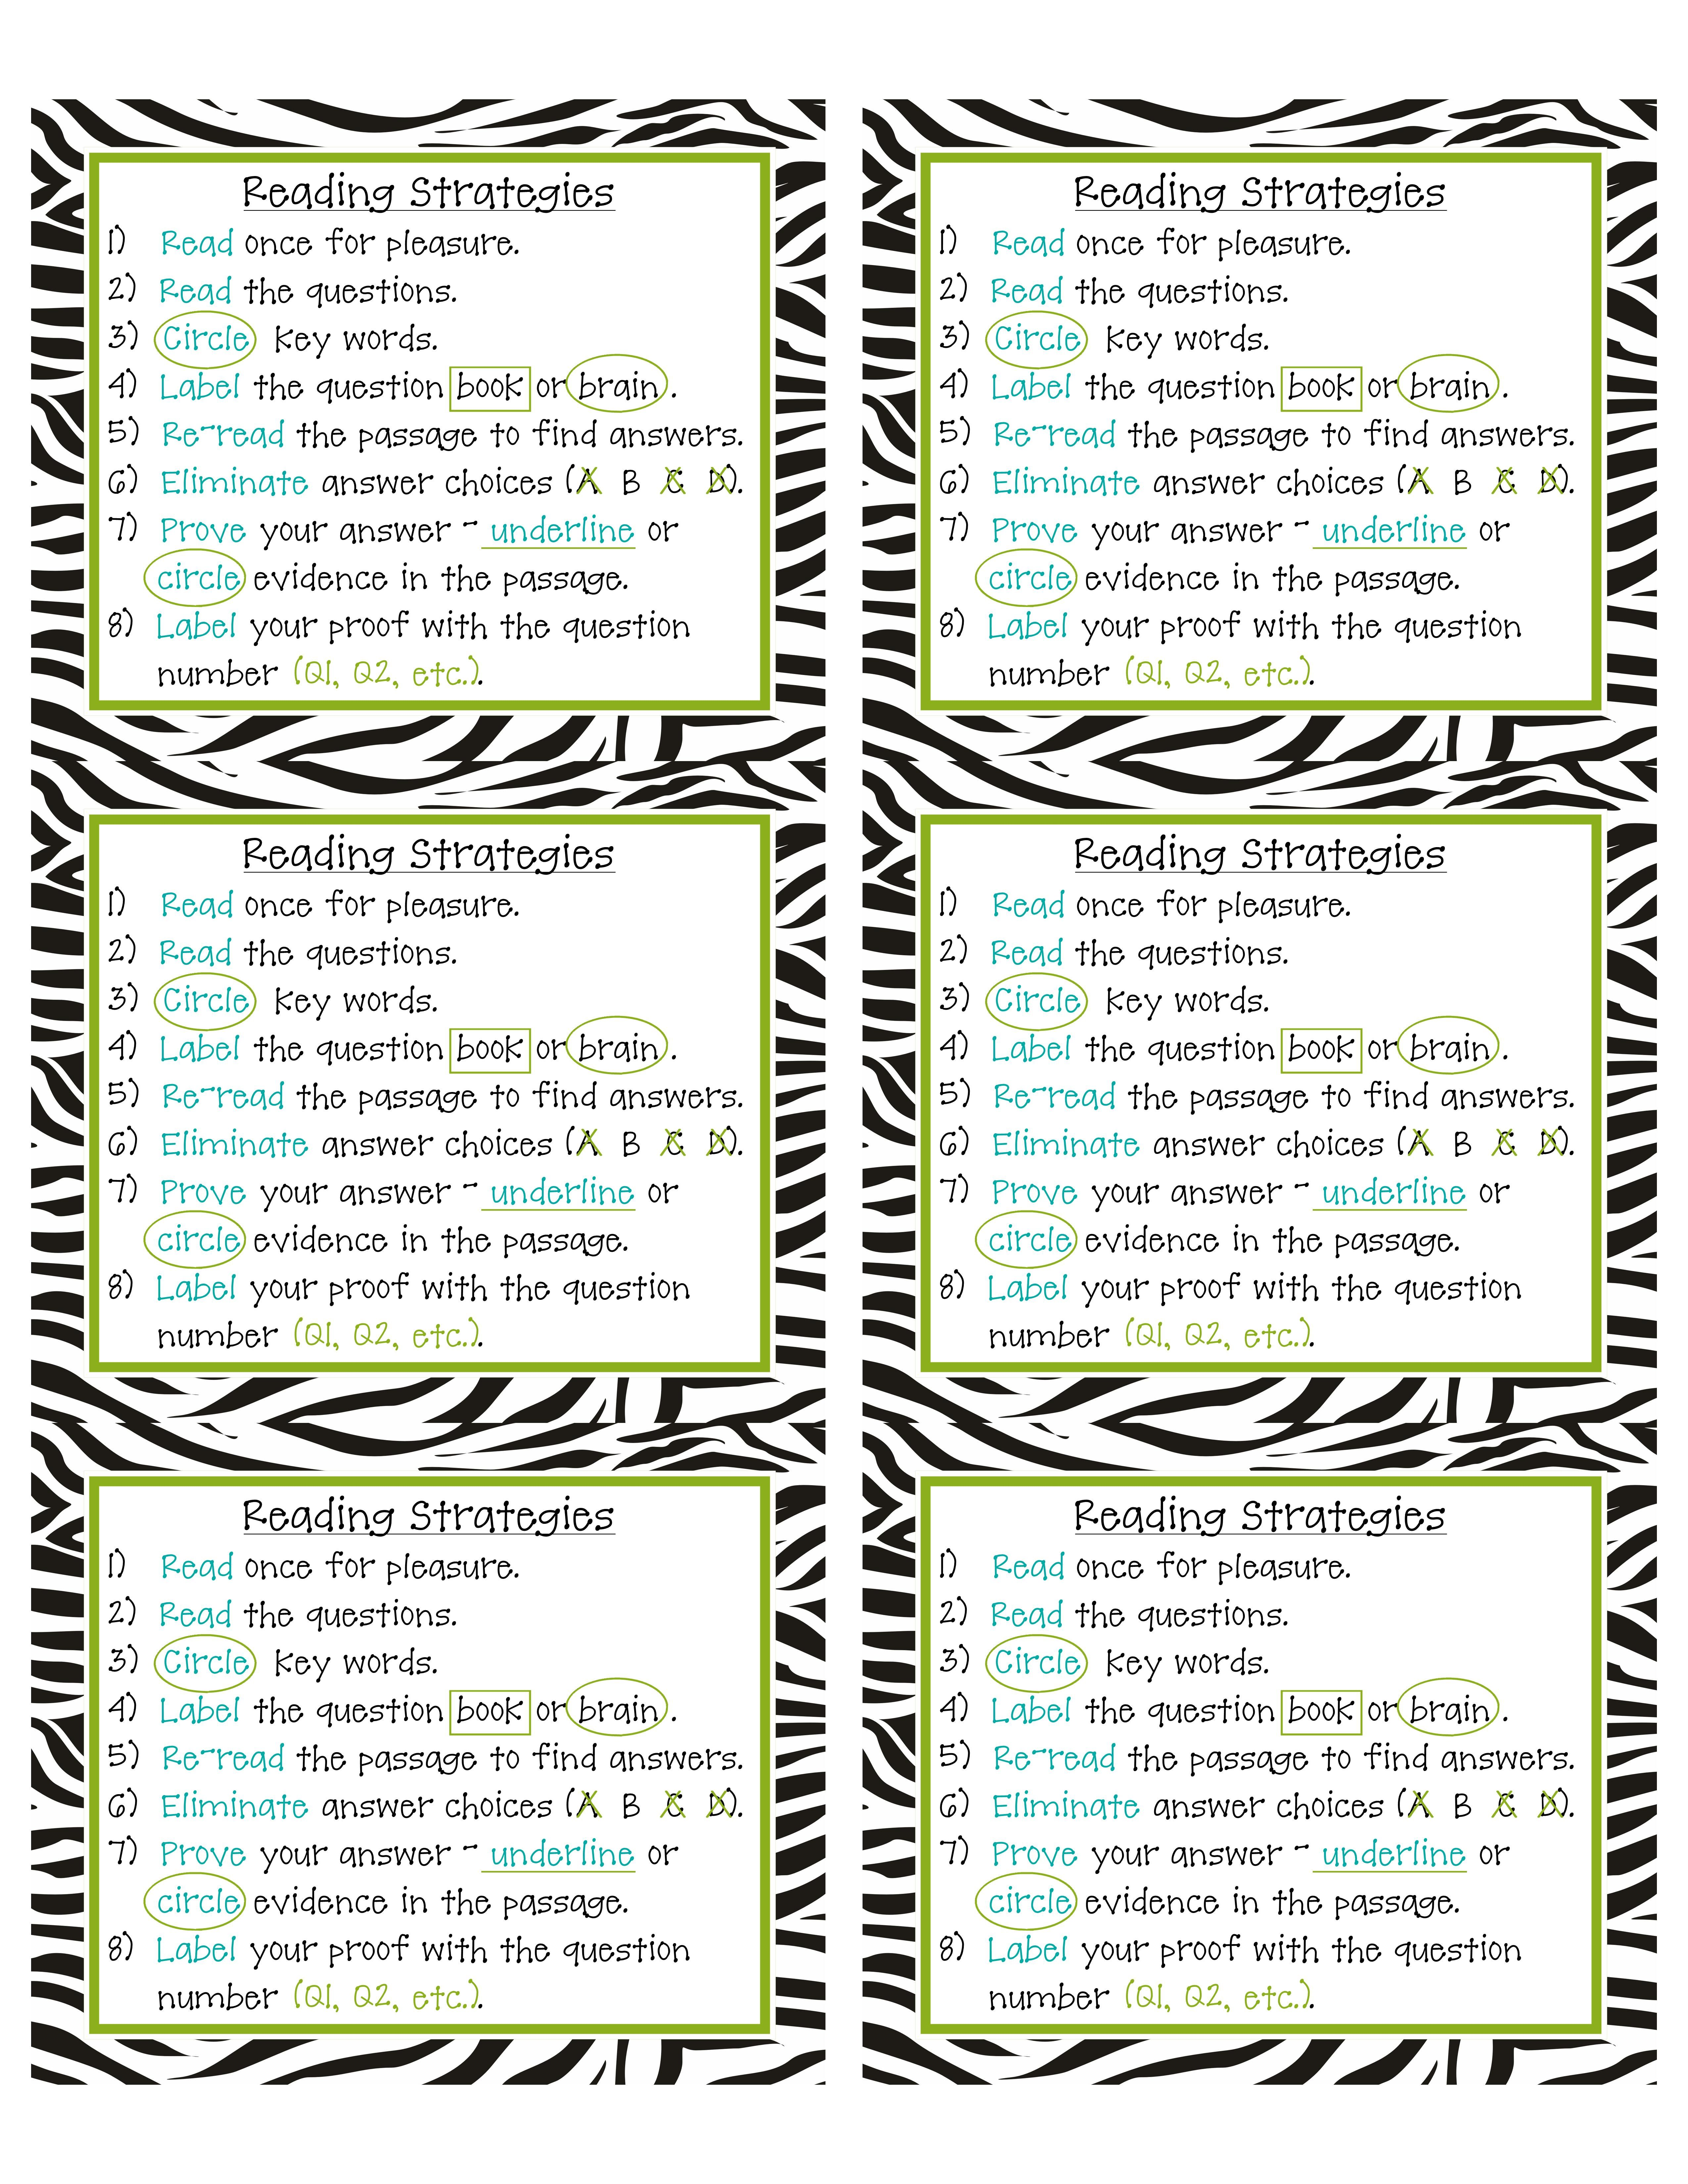 Downloadable Reading Strategies Checklist My Students